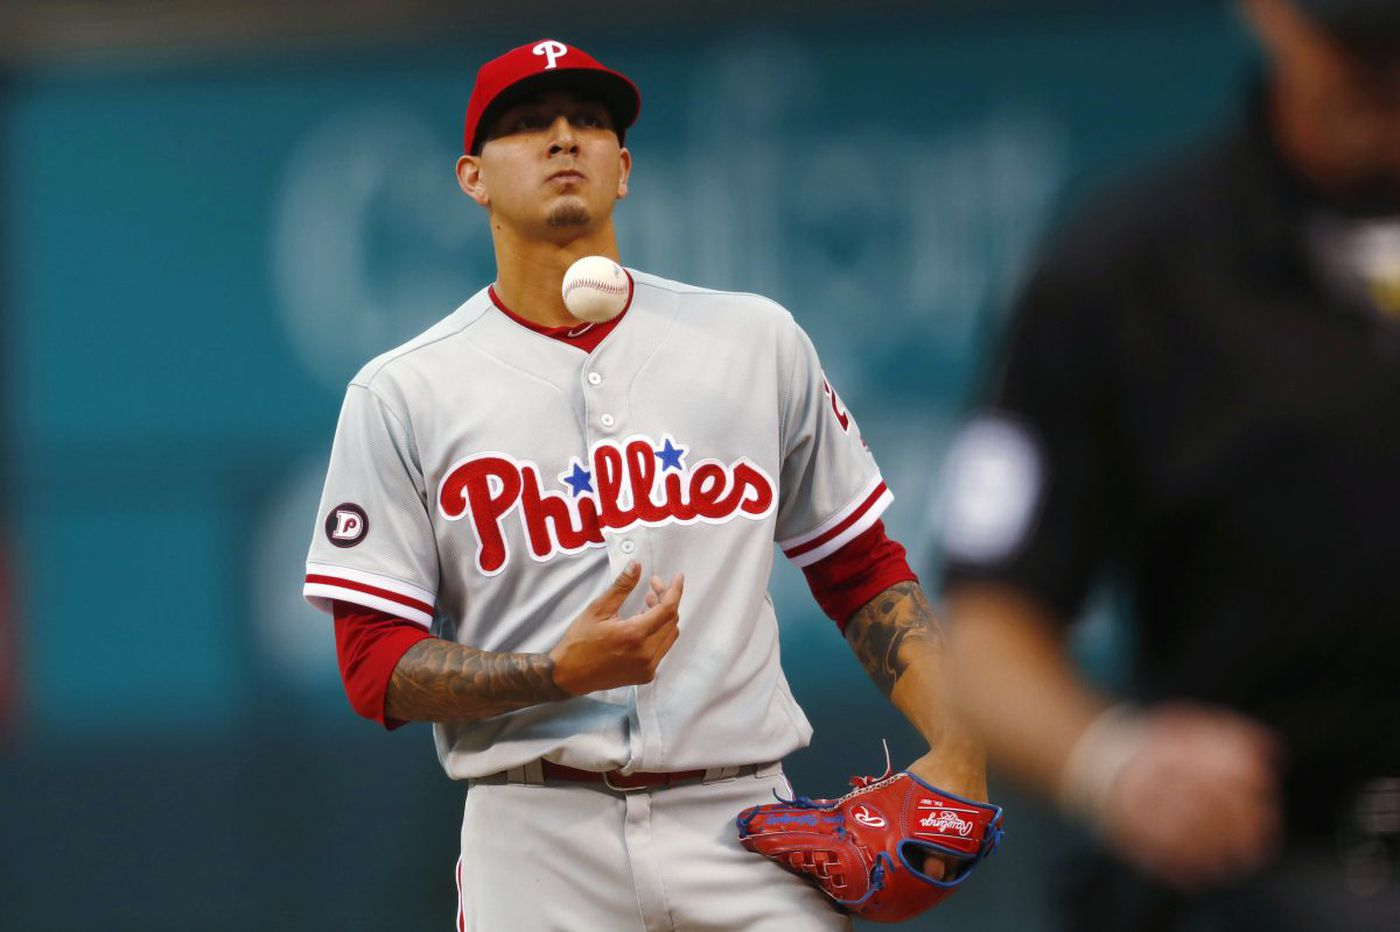 Road-weary Phillies lose another game - and Aaron Altherr